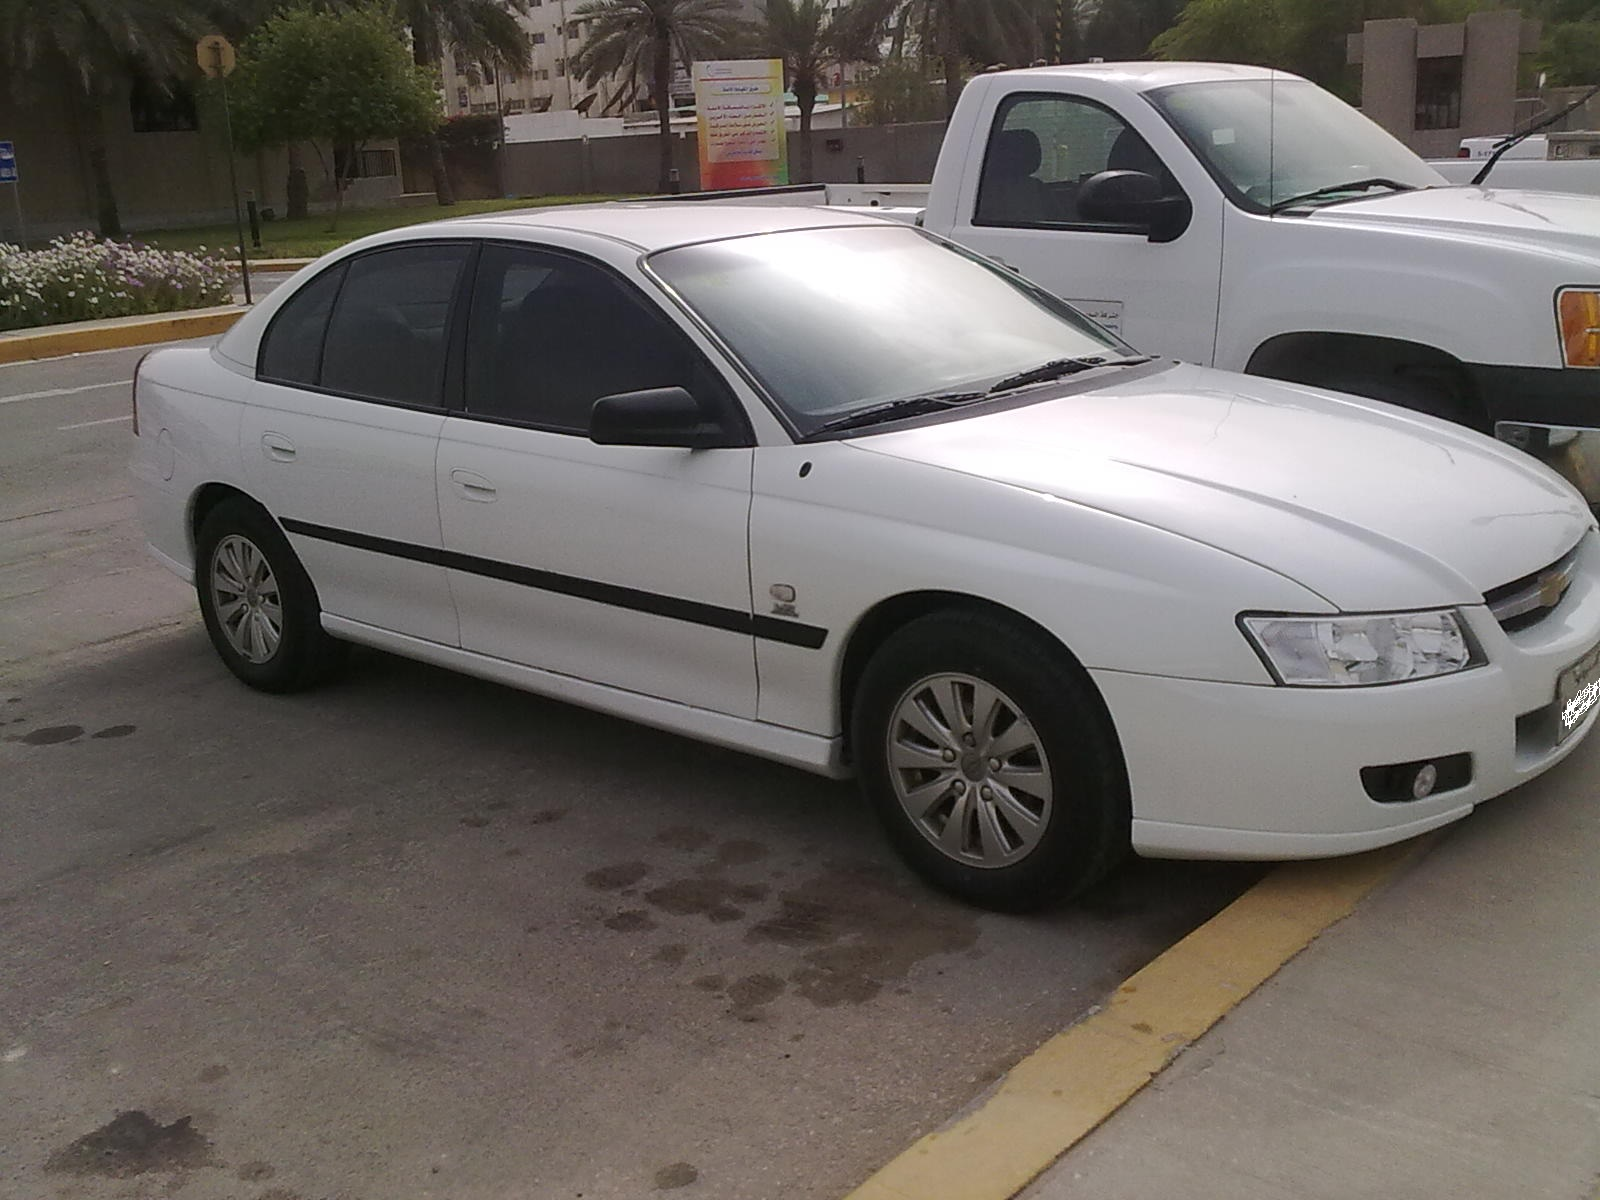 Chevrolet lumina 2005 photo - 1